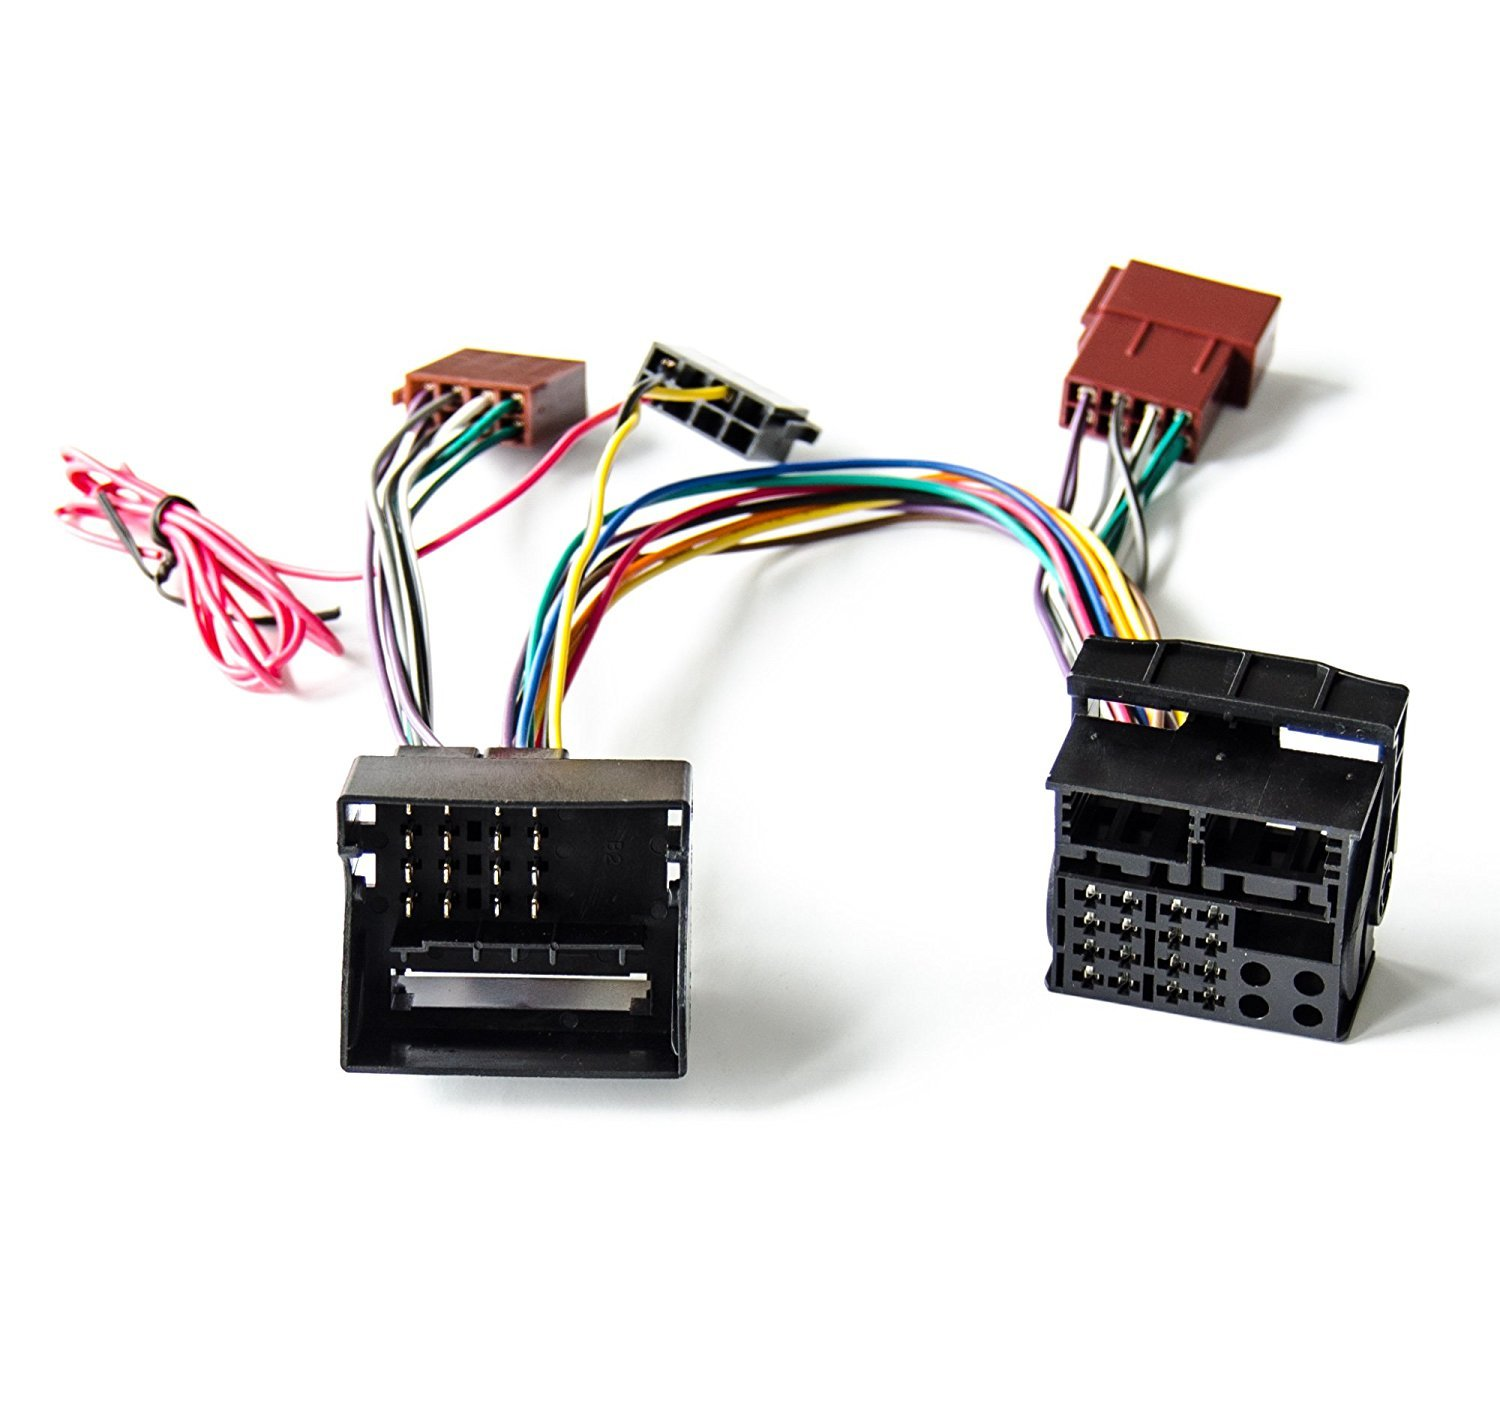 Parrot Iso Adaptor For Vw Electronics Wiring Diagram Ck3100